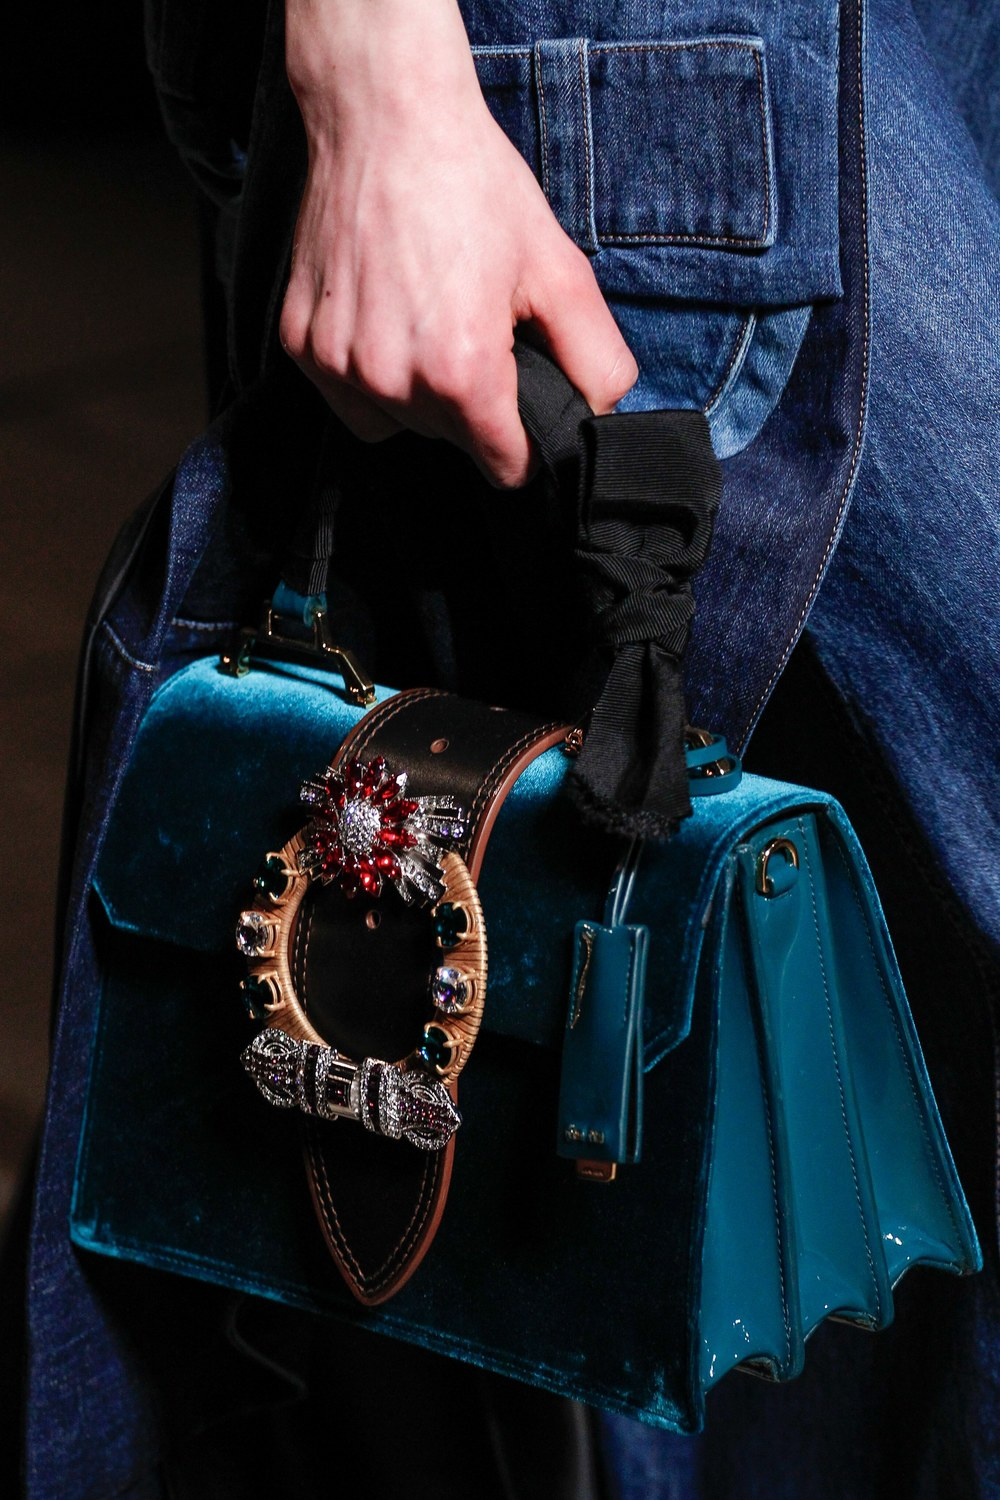 Miu Miu: Photo Via Vogue